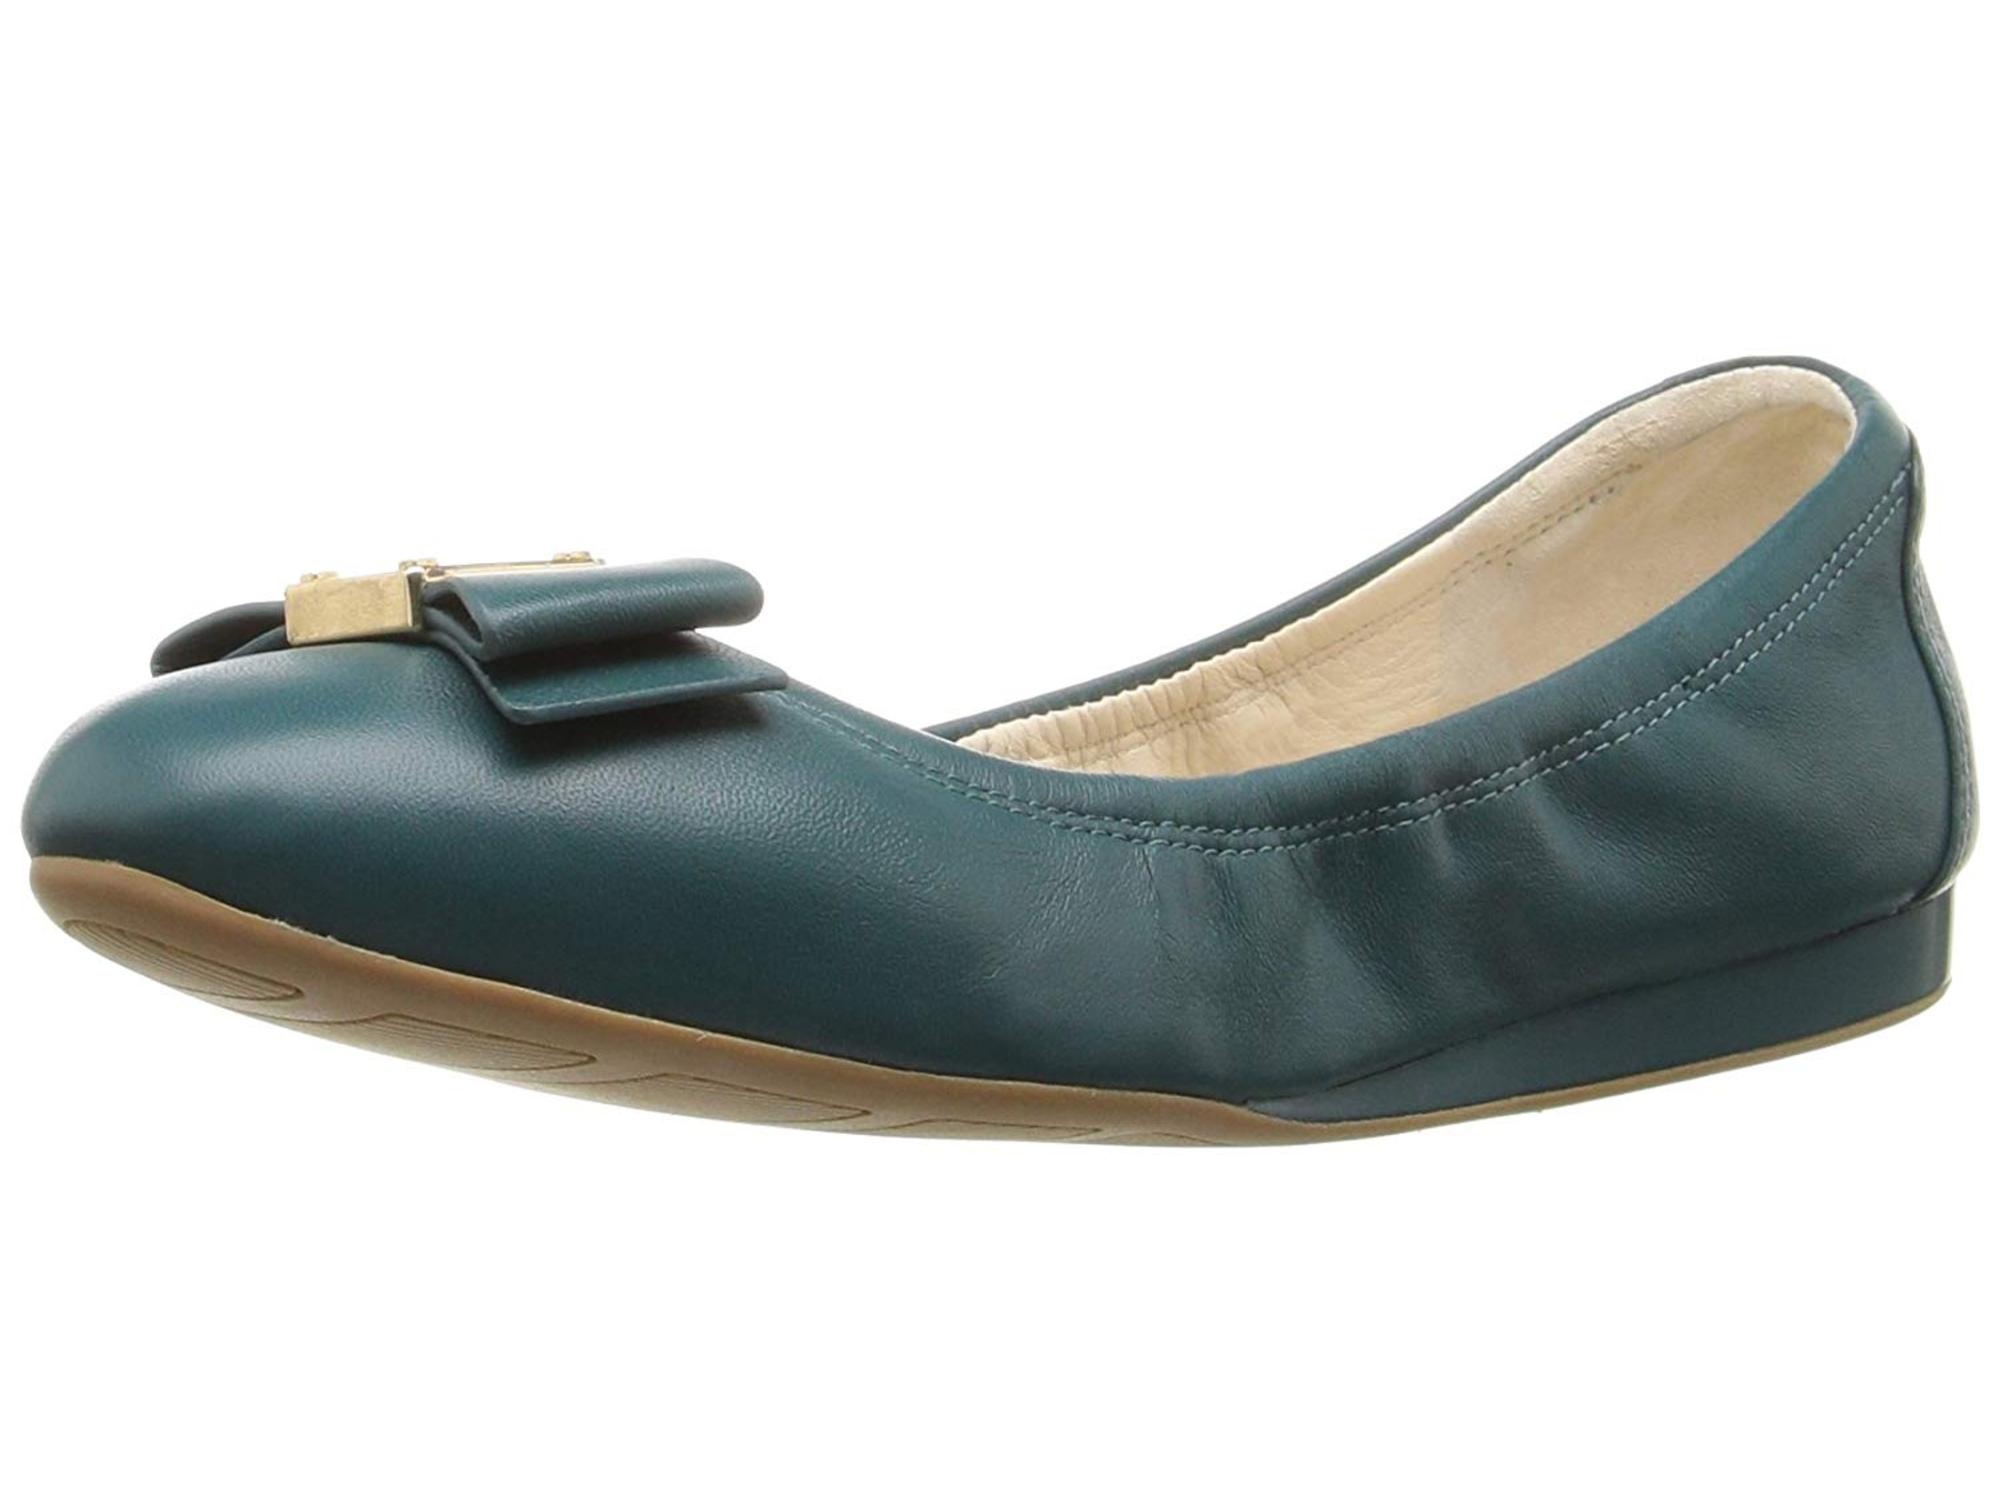 f2bfb410e3c8 Cole Haan Women s Tali Bow Ballet Flat